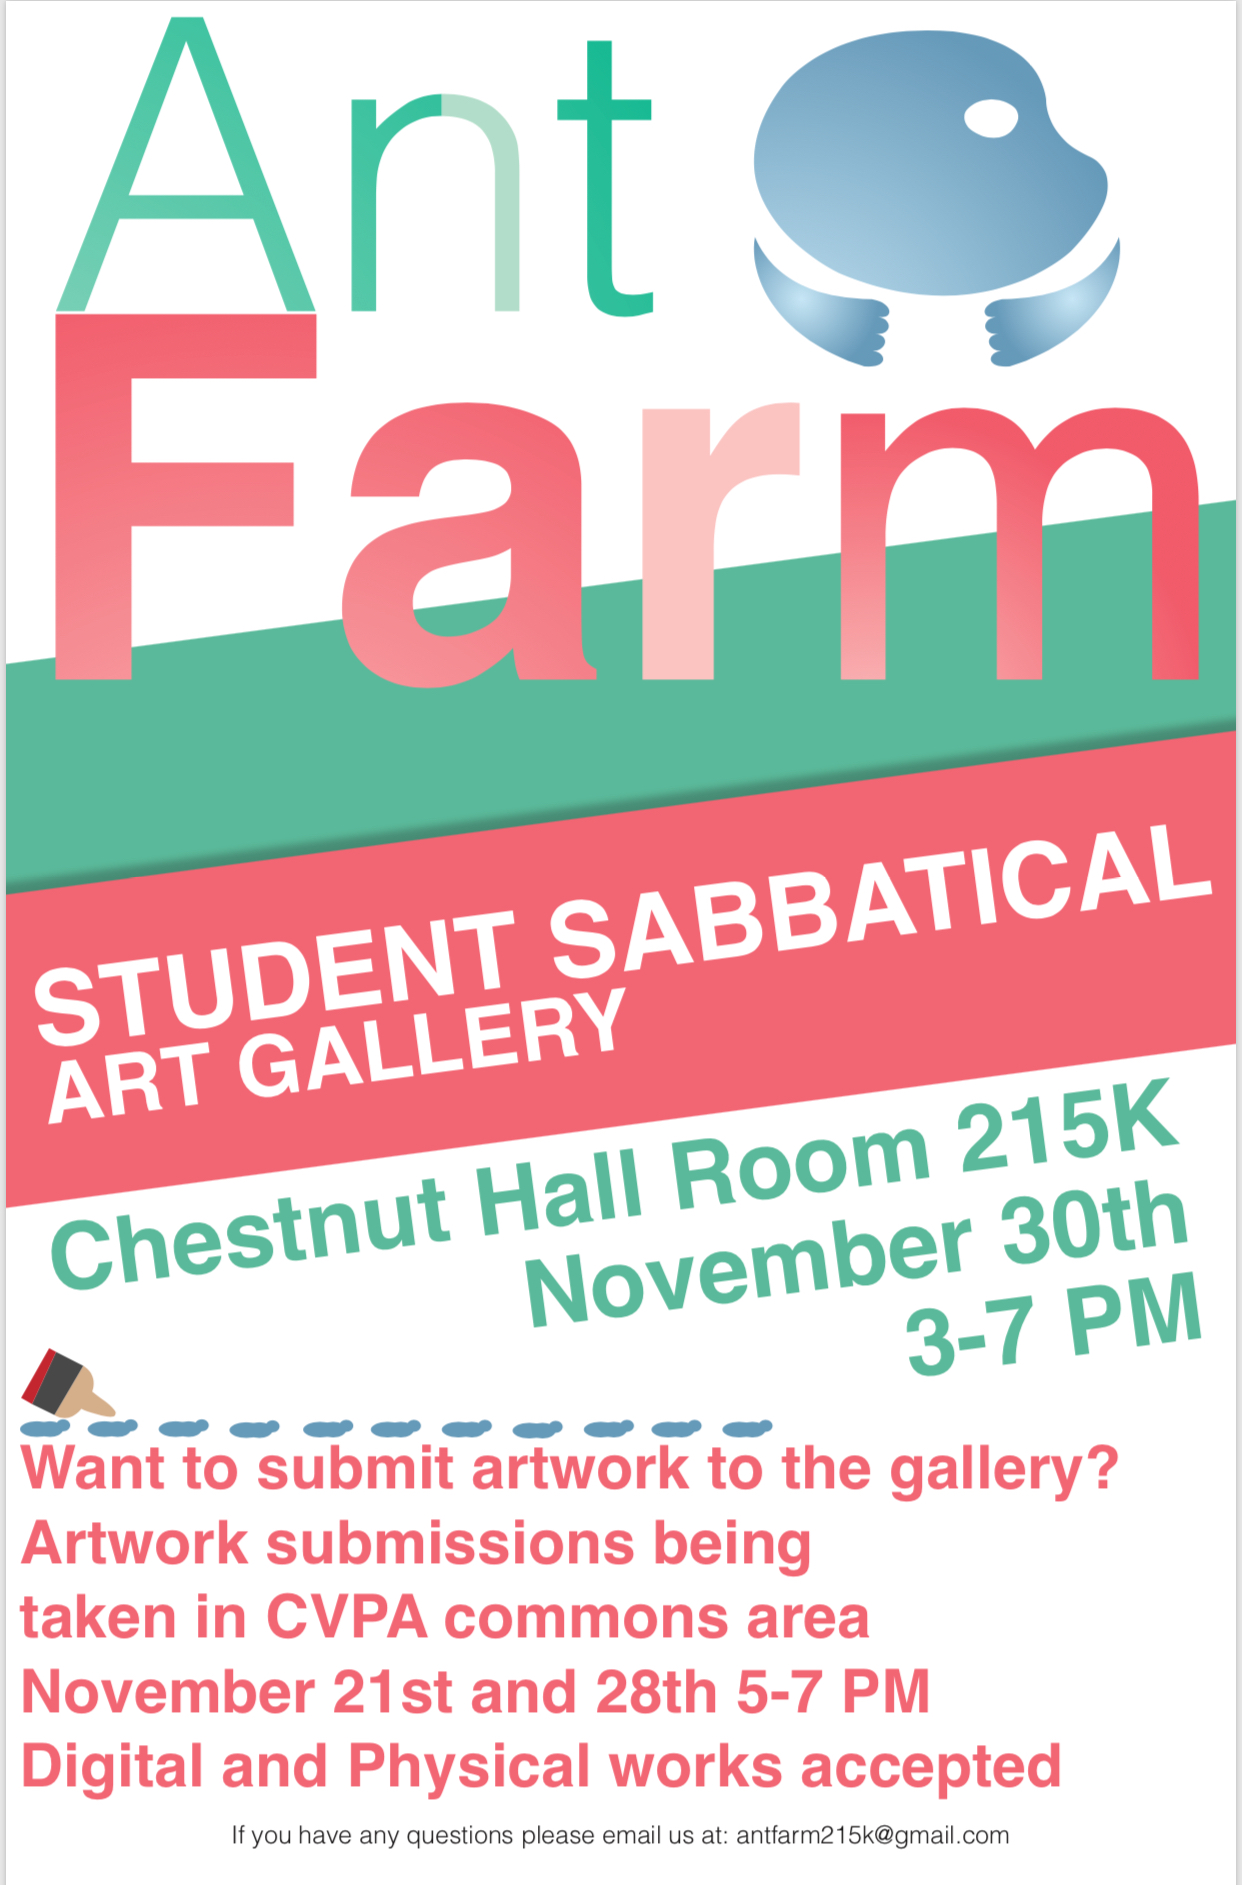 Over the last couple weeks, first-year student Ben Urdi has been organizing for the first show in the new art gallery in Chestnut Residence Hall! Please contact Ben at antfarm215k@gmail.com to submit your work for the show. There's no restrictions about what the art can be. The show opens on Thursday 11/30!